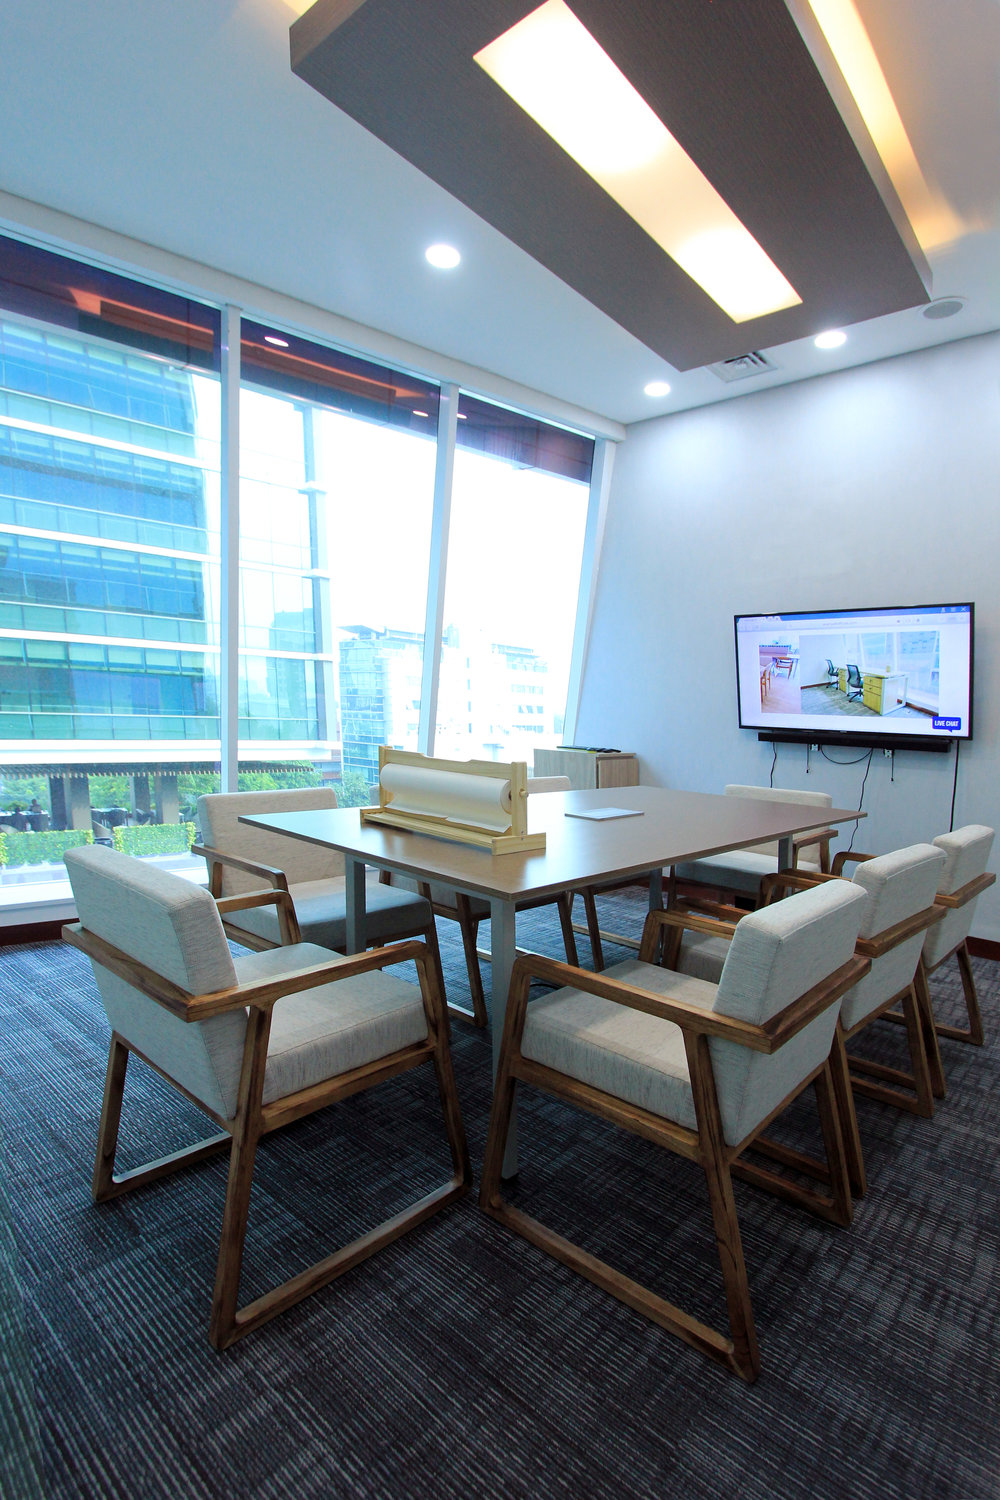 Avenue8 Meeting Room